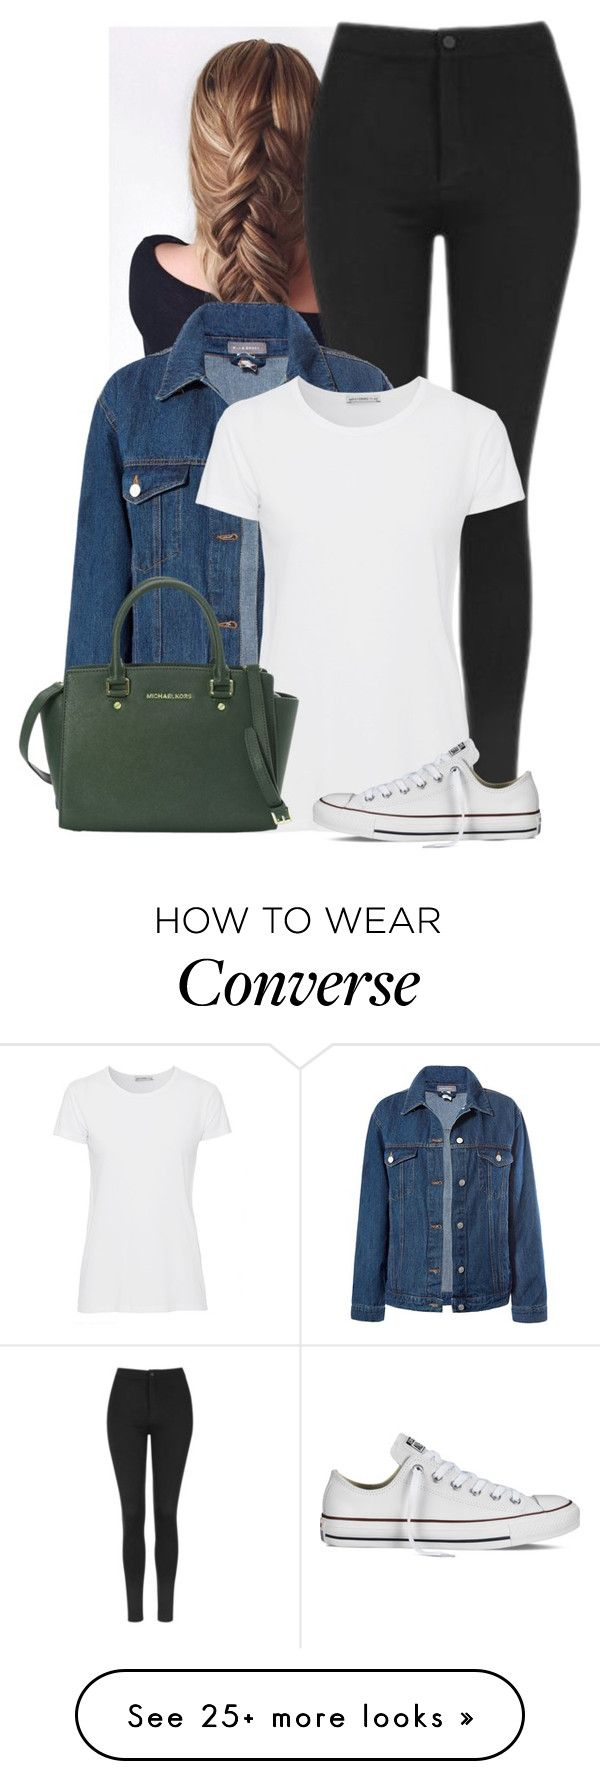 """""""Untitled #876"""" by bunnylovexox on Polyvore featuring Topshop, Sans Souci, AG Adriano Goldschmied, MICHAEL Michael Kors and Converse"""